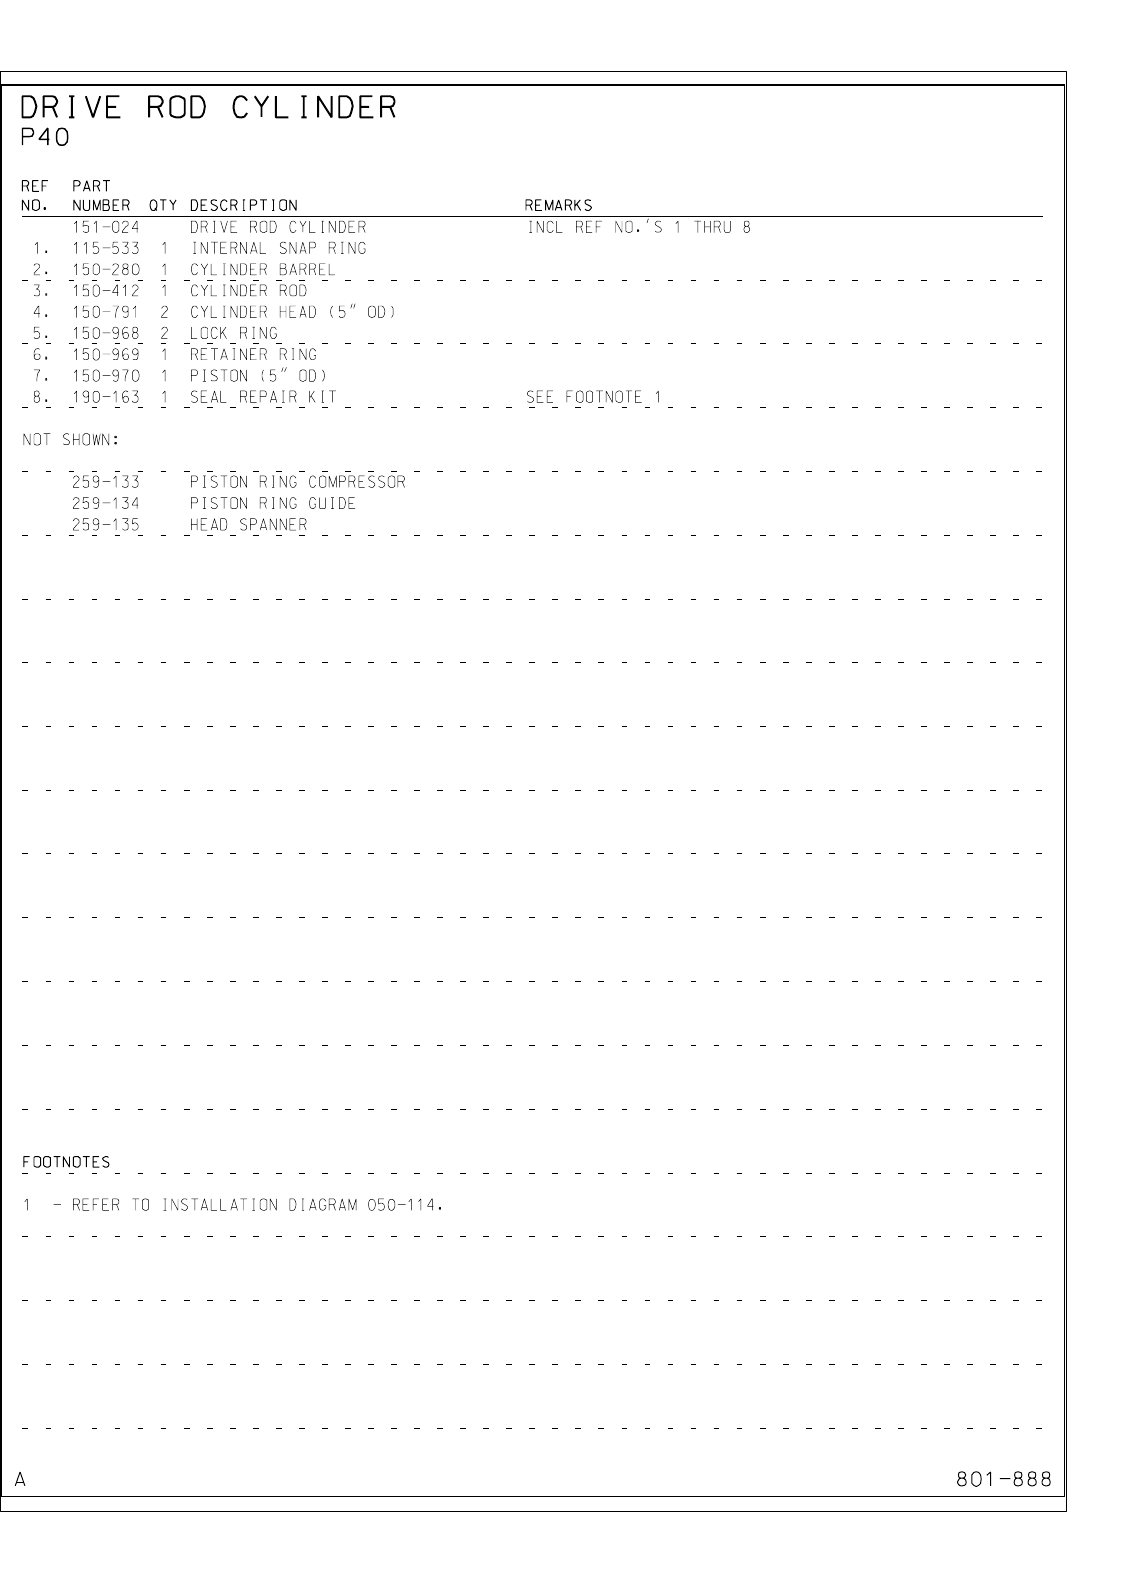 N/A Ditch Witch Welder PR95 P80 Parts Manual 050 684 on bomag wiring diagram, lull wiring diagram, simplicity wiring diagram, american wiring diagram, john deere wiring diagram, western star wiring diagram, van hool wiring diagram, astec wiring diagram, liebherr wiring diagram, lowe wiring diagram, sullair wiring diagram, perkins wiring diagram, clark wiring diagram, demag wiring diagram, new holland wiring diagram, international wiring diagram, 3500 wiring diagram, sakai wiring diagram, ingersoll rand wiring diagram, case wiring diagram,